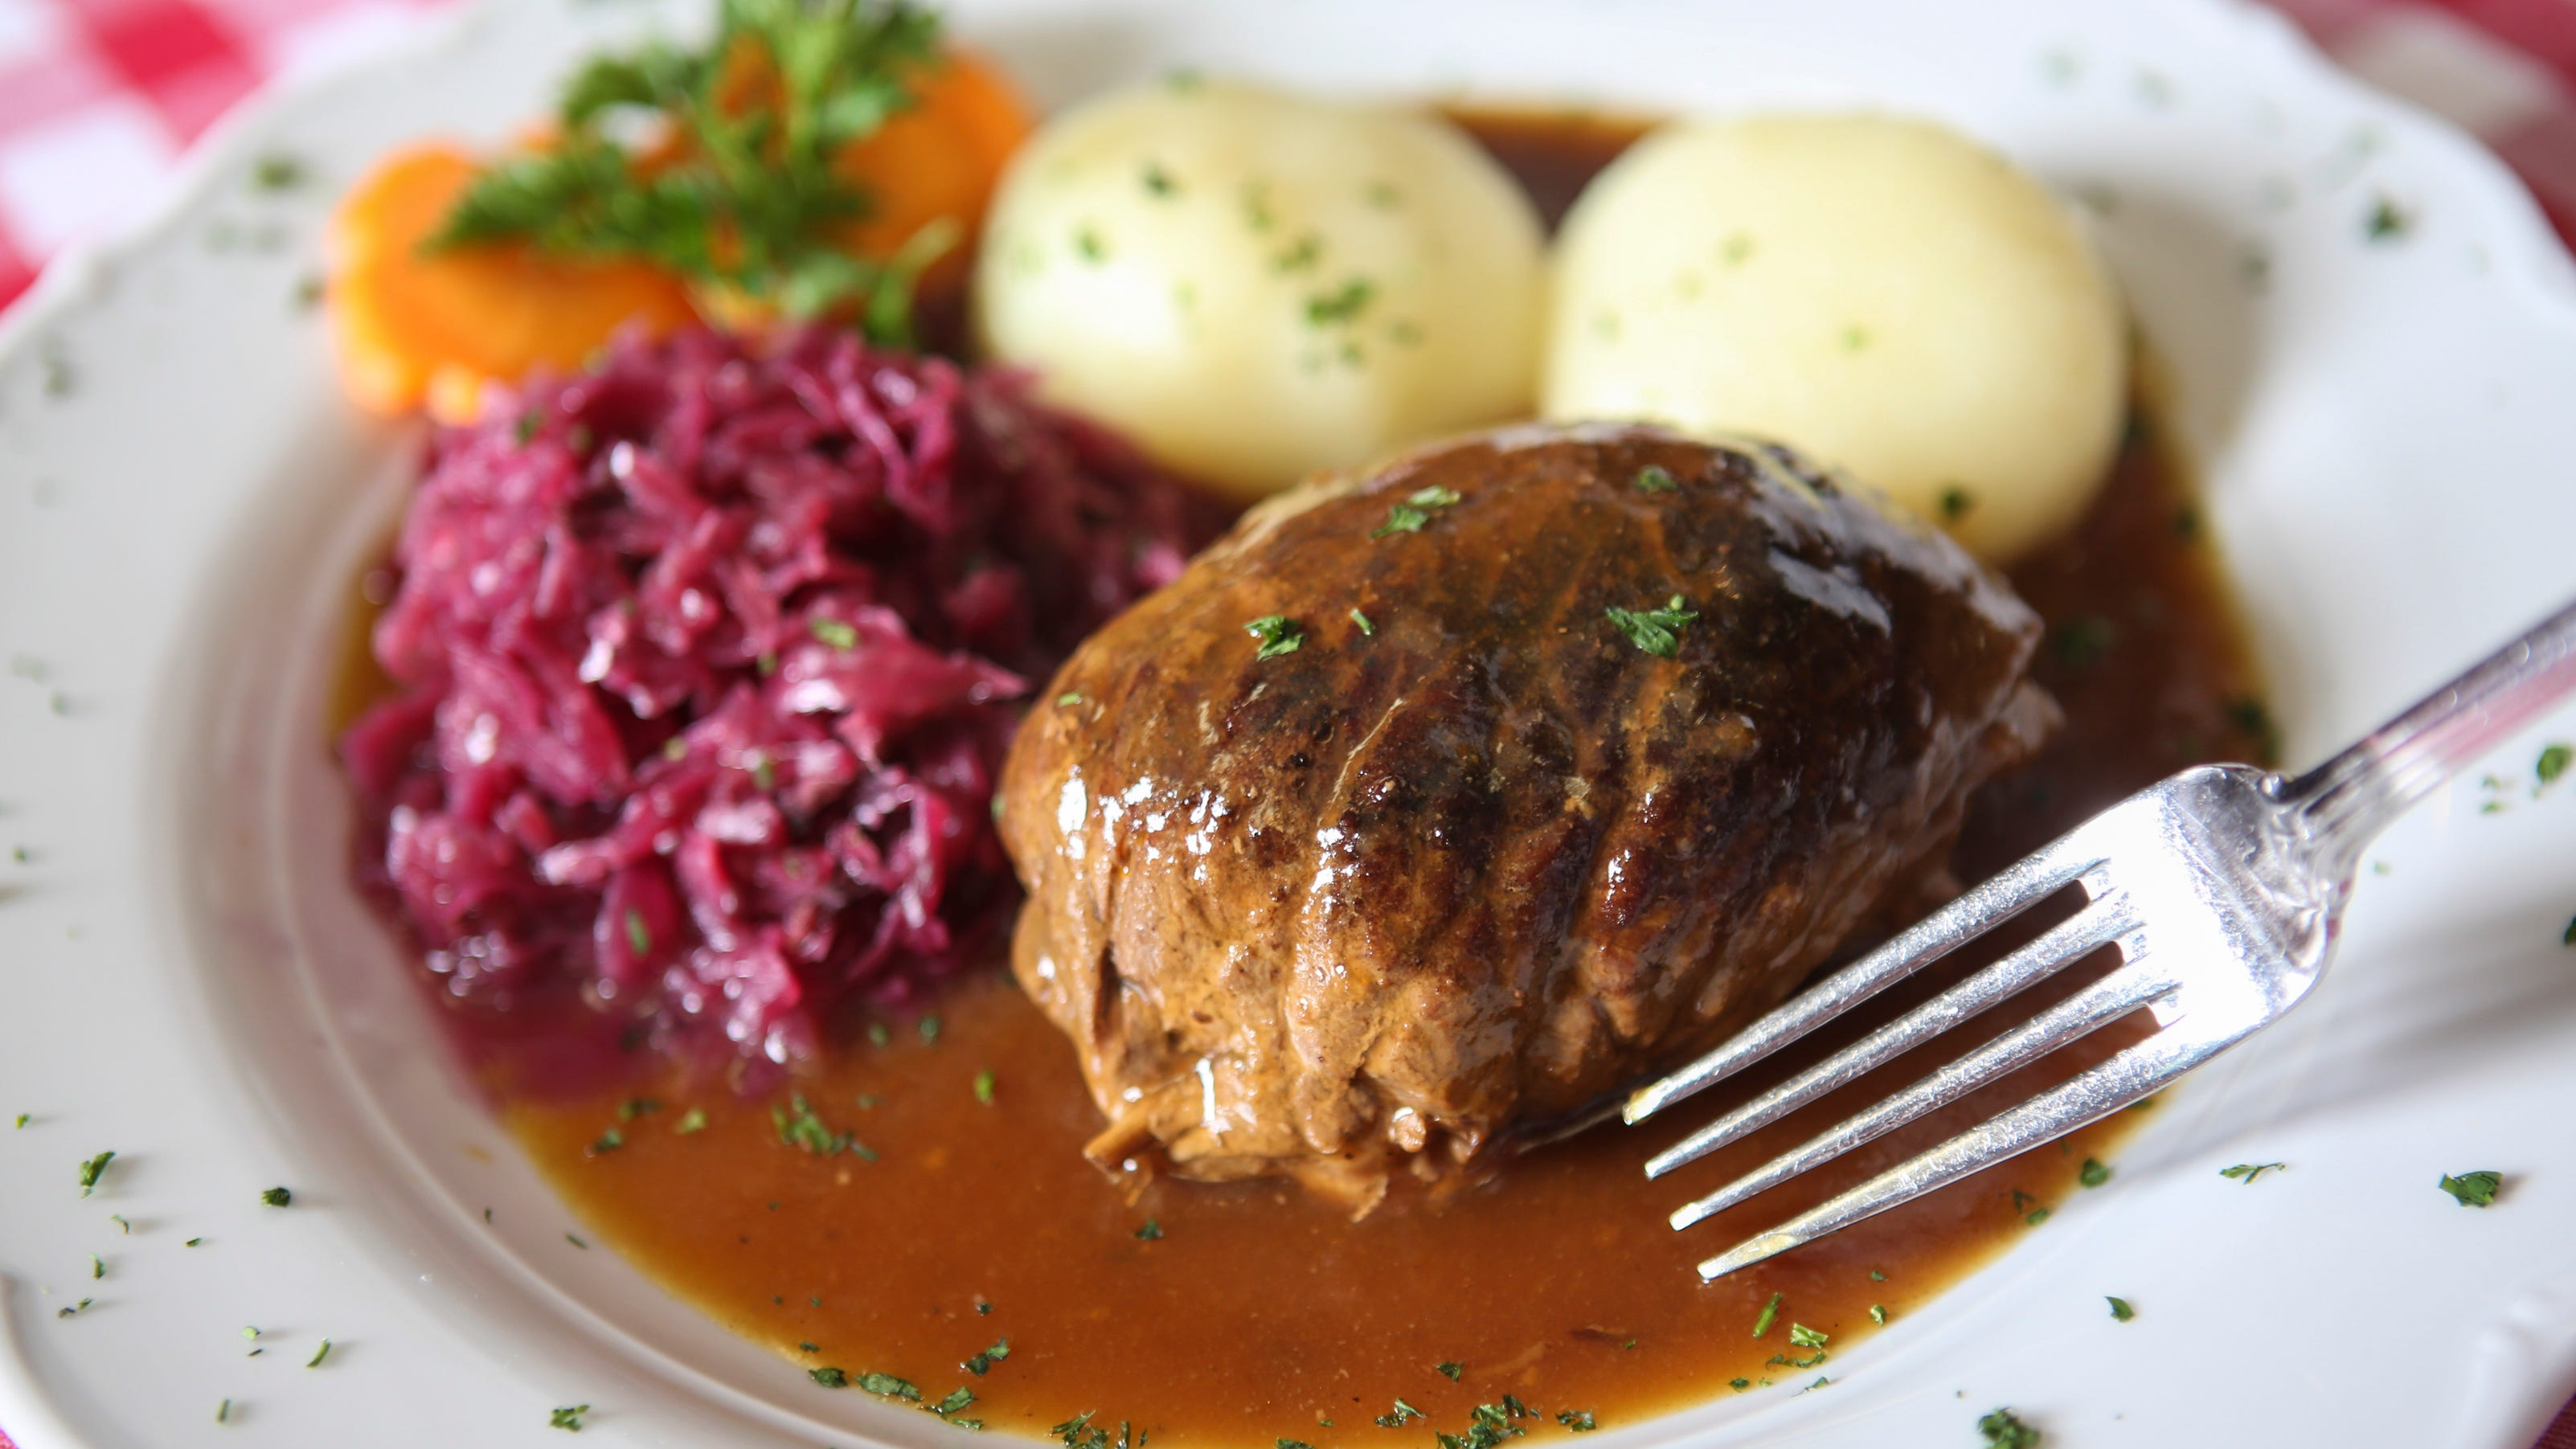 Gasthaus recipe for potato dumplings